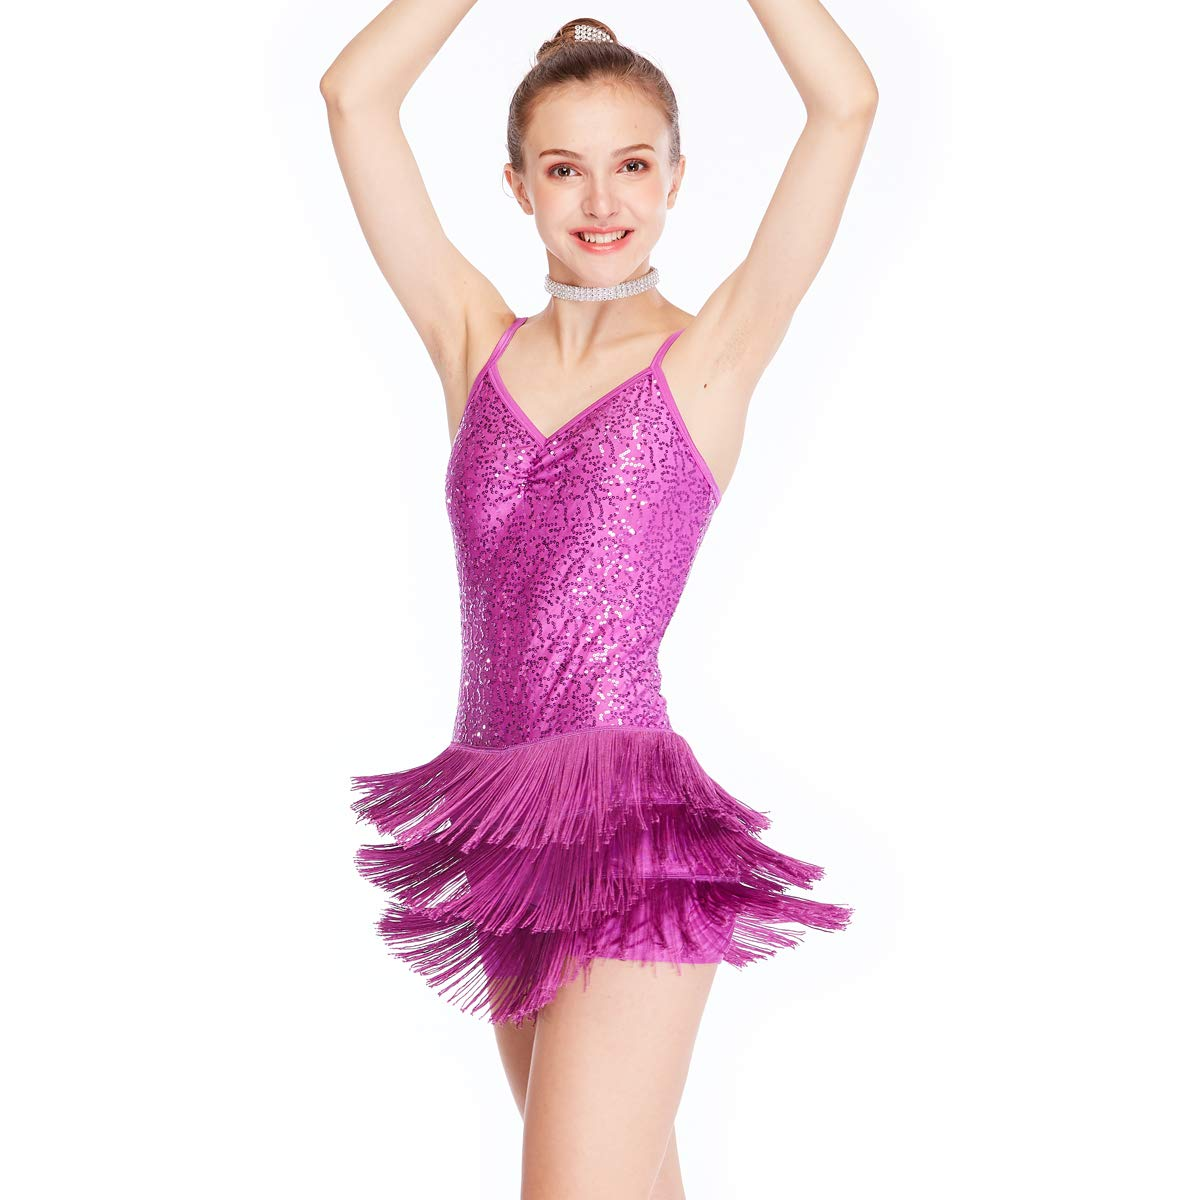 a25a3f06cd2a Amazon.com  MiDee Dance Costume Biketard Camisole Sequins Top with ...